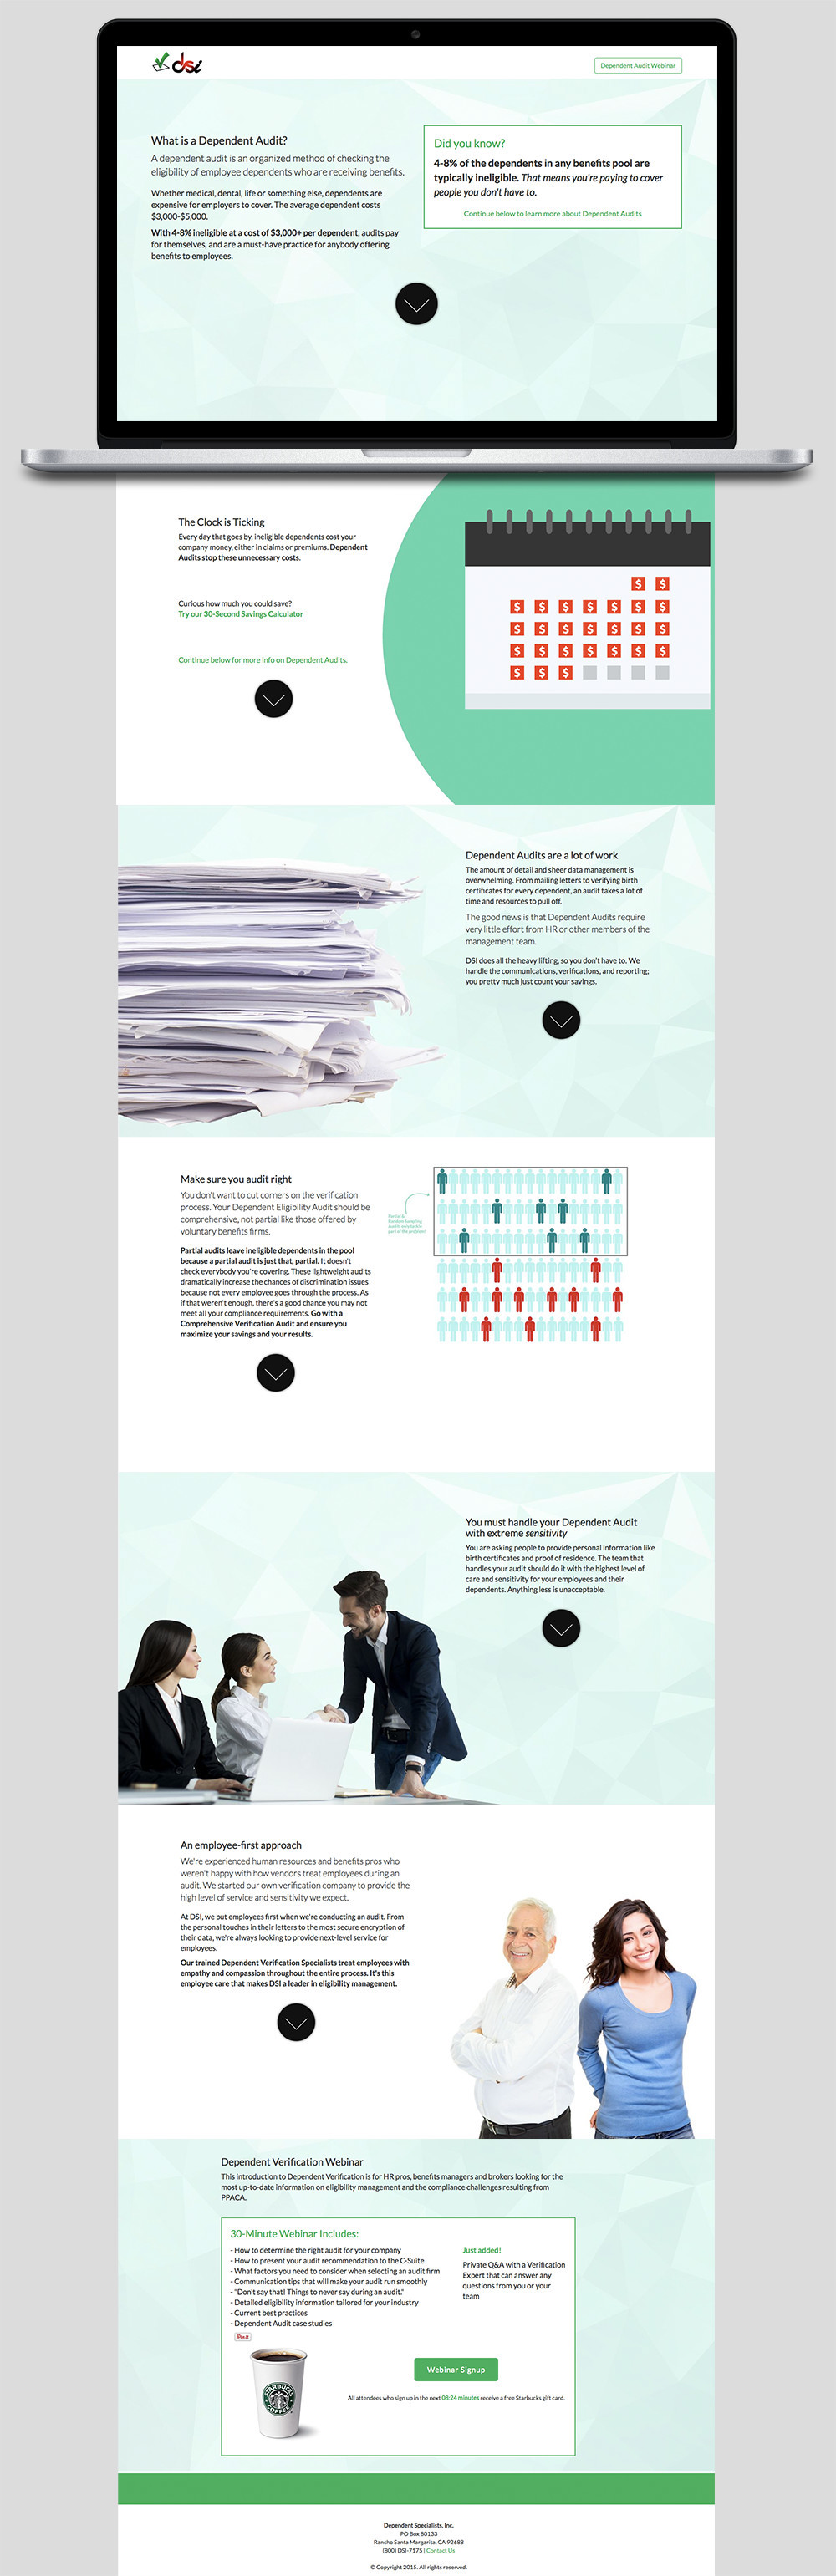 Landing Page - What is a Dependent Audit? on Behance